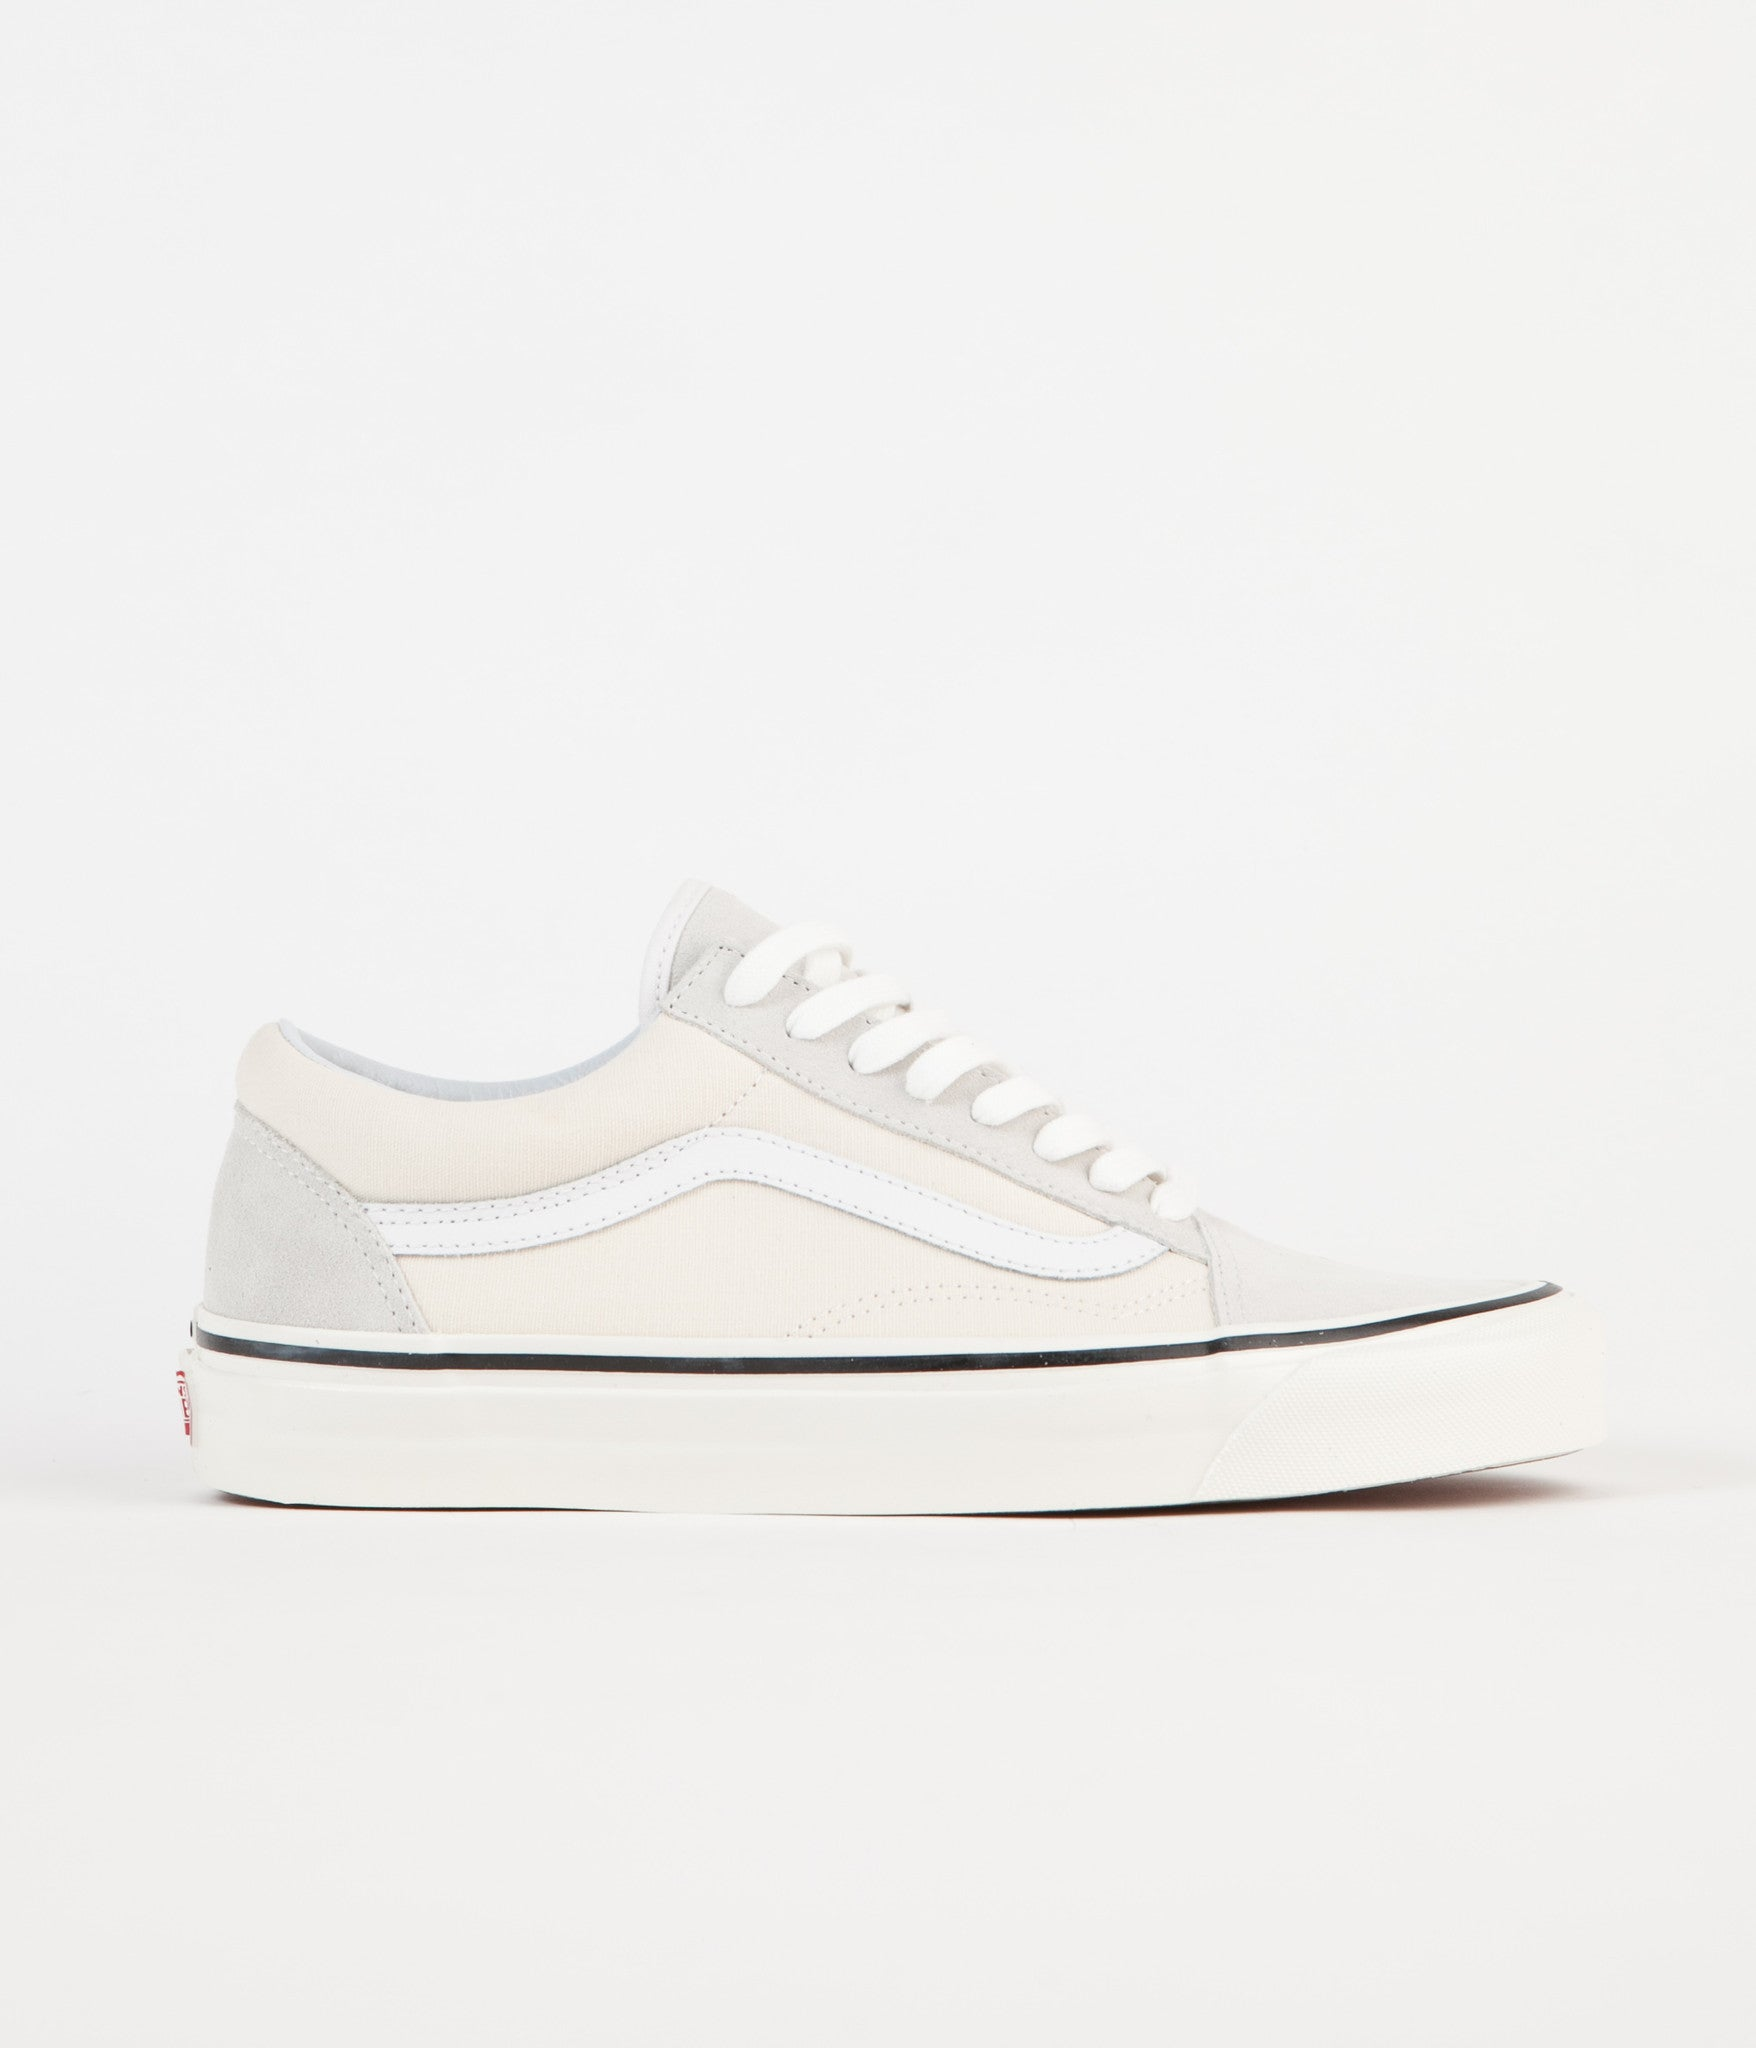 a2dd0f9972 Vans Old Skool 36 DX Anaheim Factory Shoes - Classic White